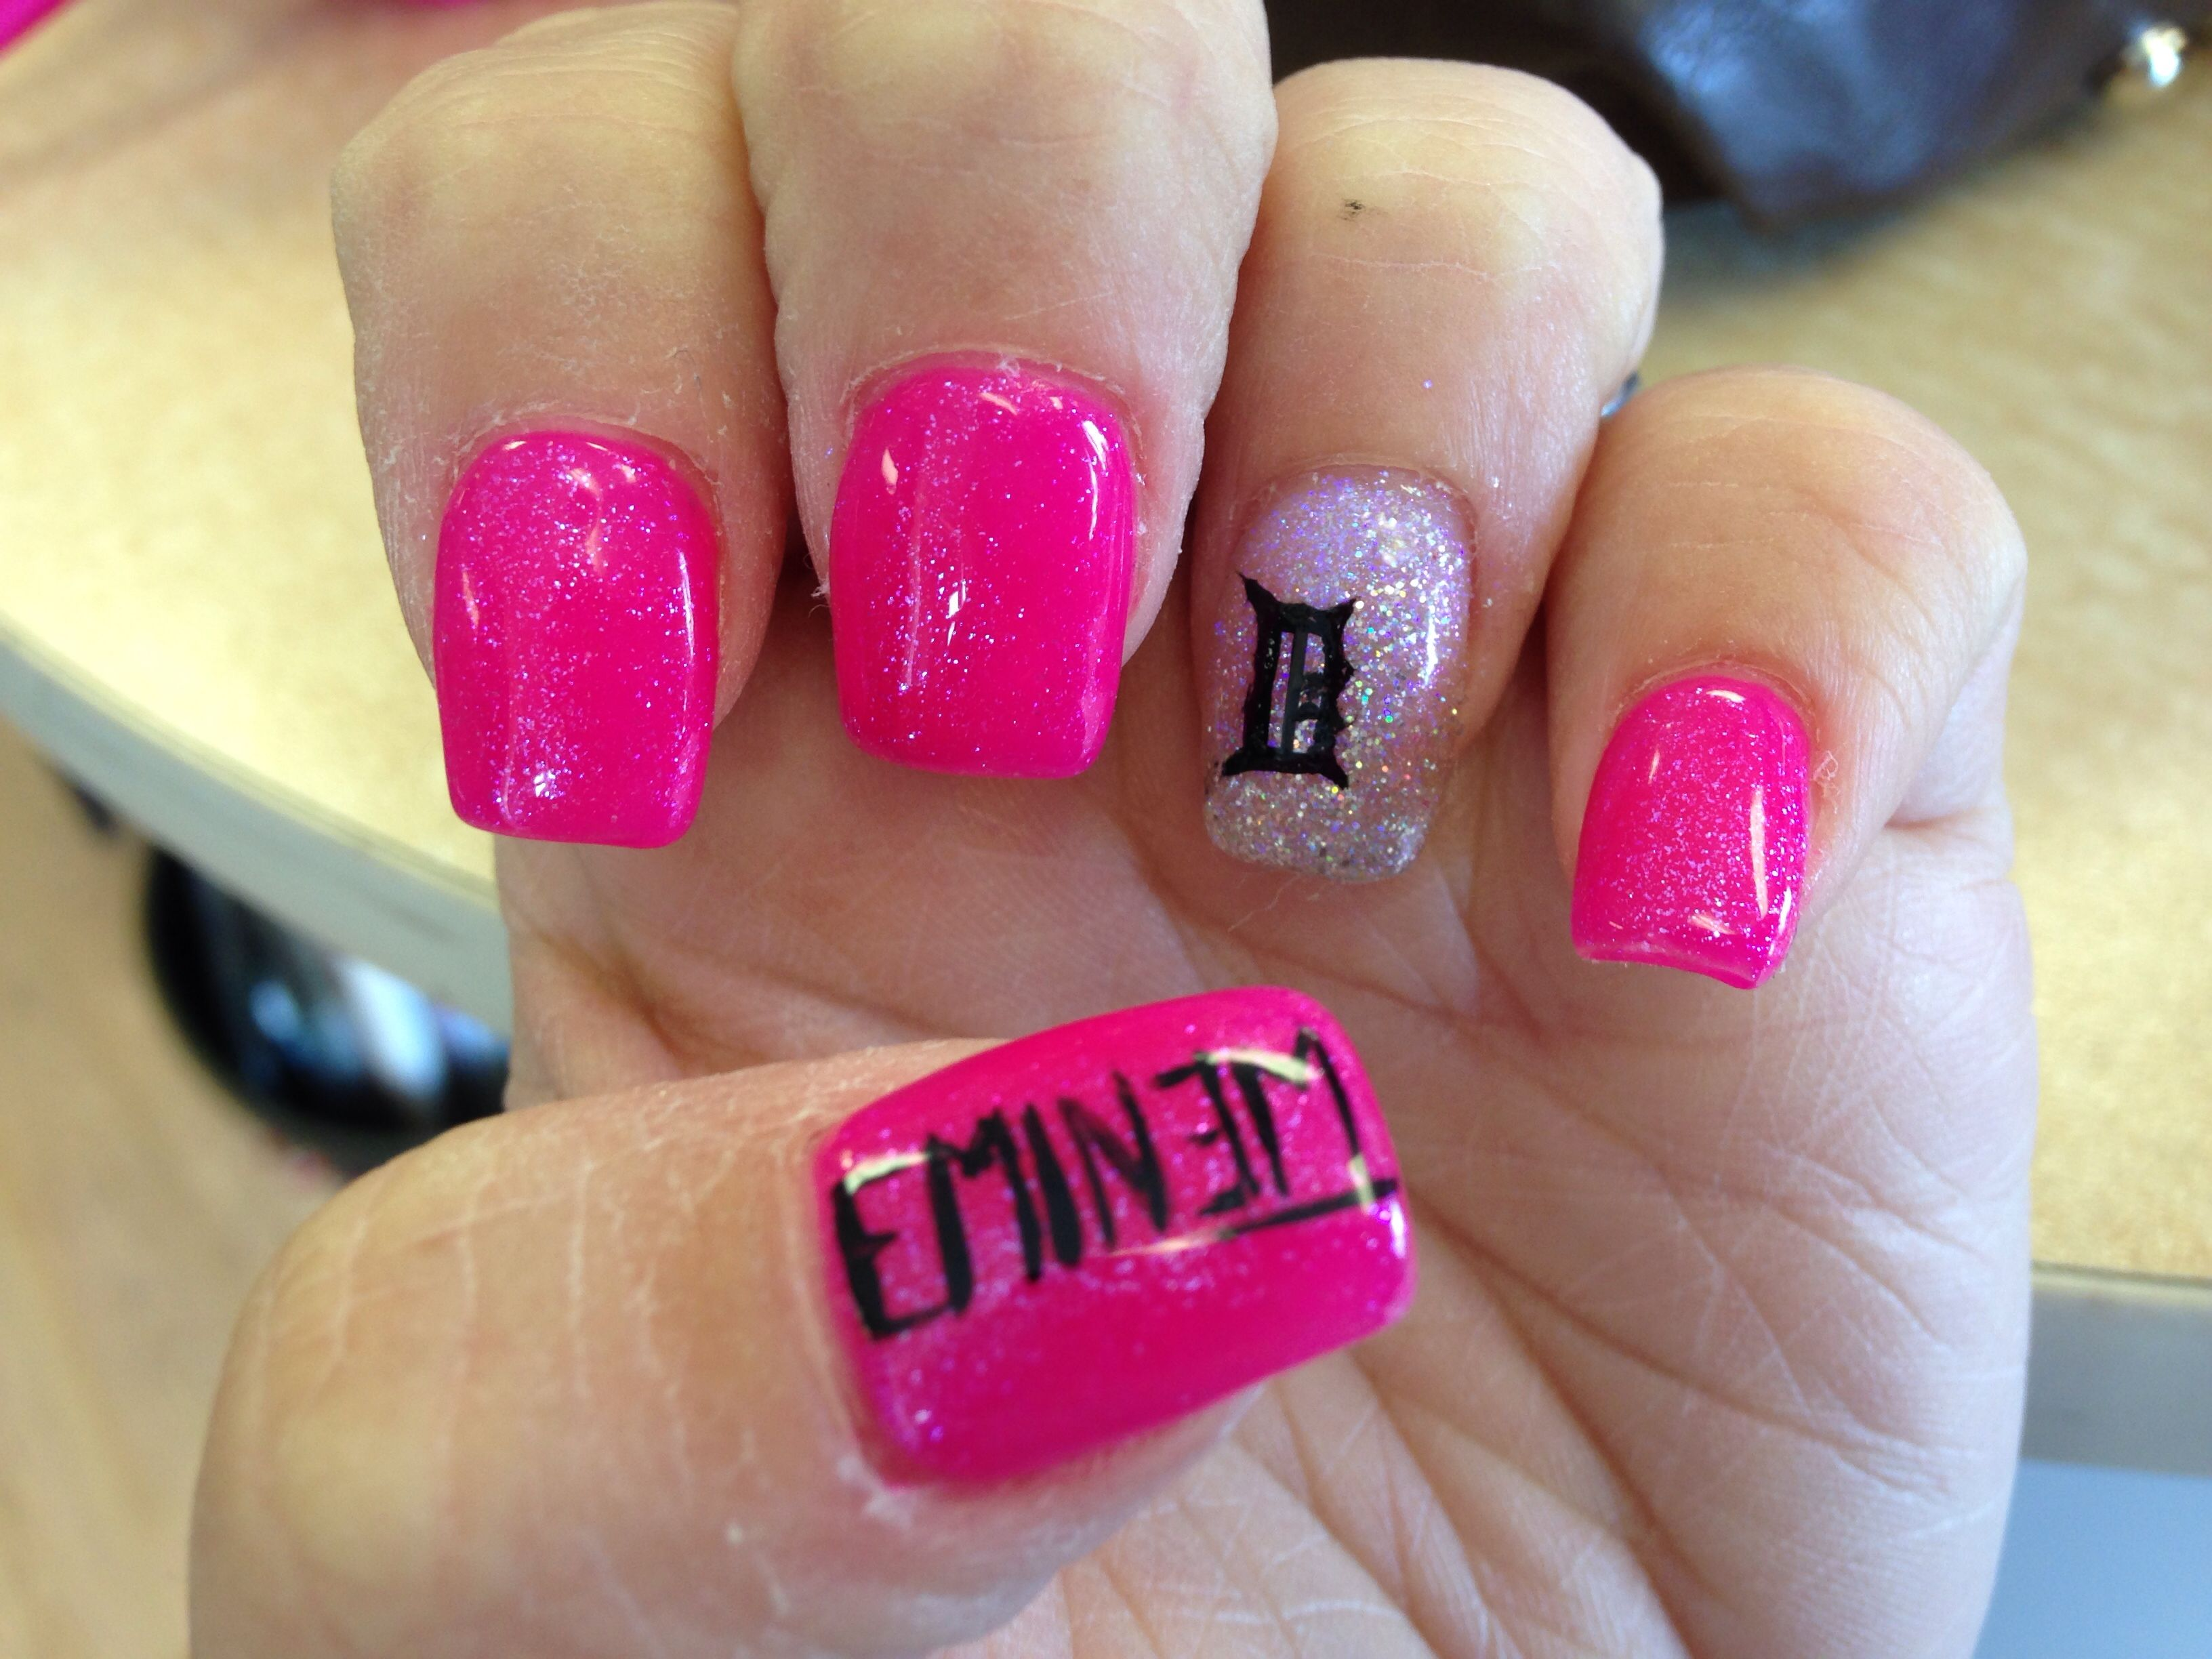 Eminem/Detroit nails! | Nails! | Pinterest